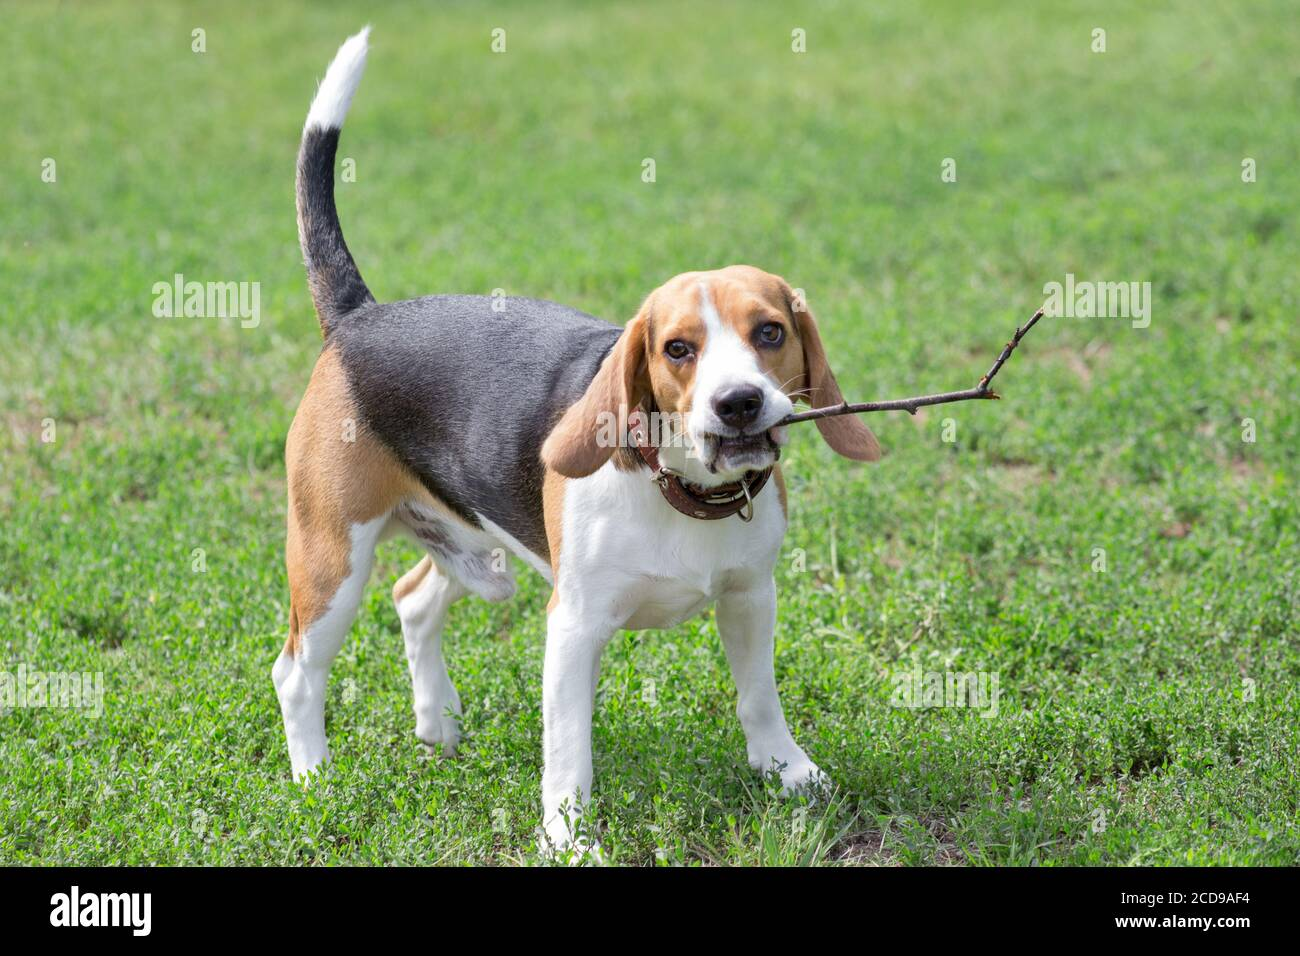 Cute English Beagle Puppy With A Twig In His Teeth Summer Park Pet Animals Purebred Dog Stock Photo Alamy